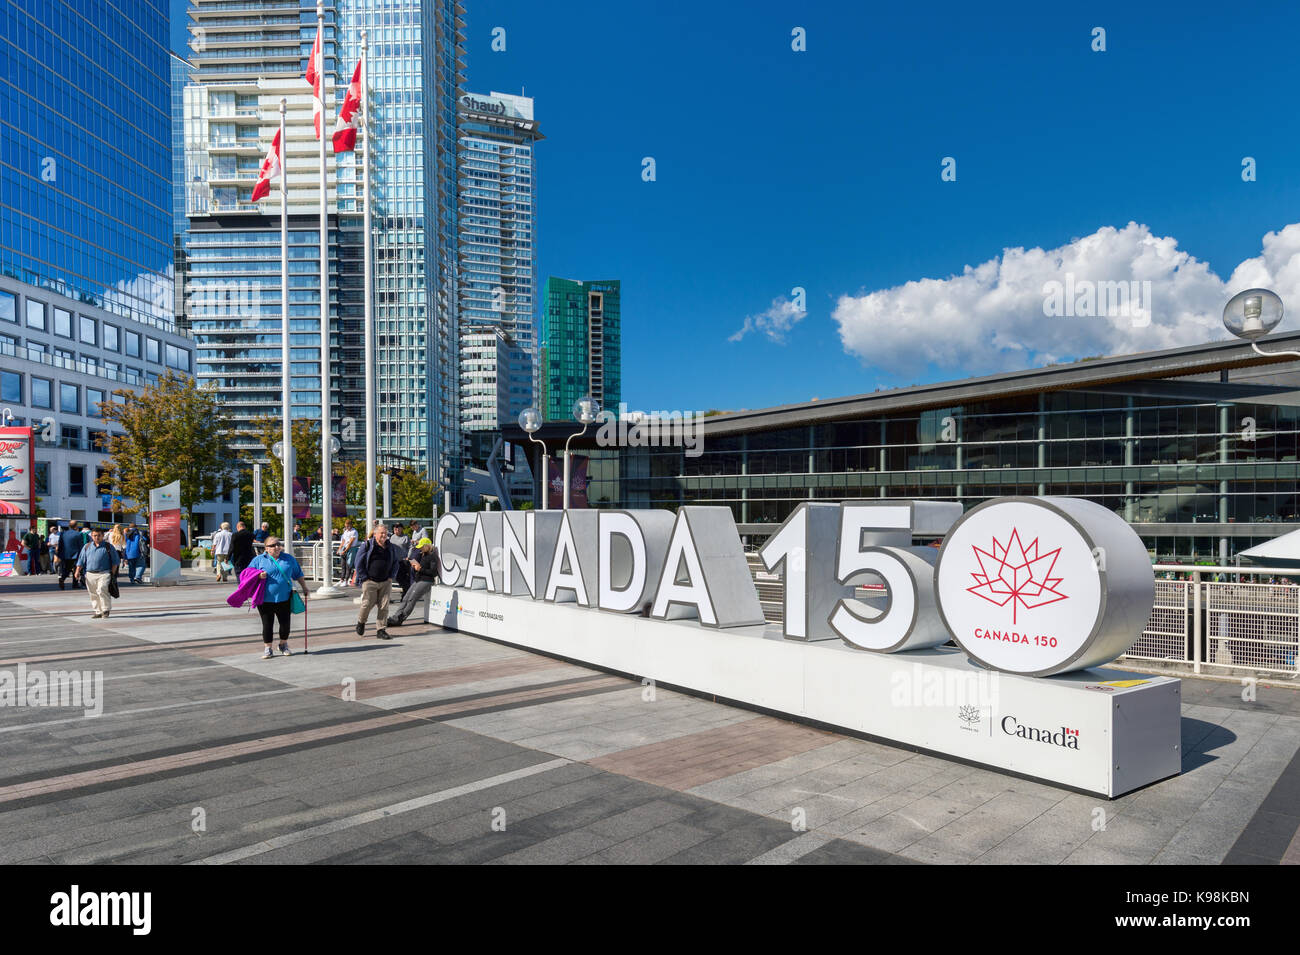 Vancouver, British Columbia, Canada - 13 September 2017: giant Canada 150 sign celebrating Canada's 150th birthday - Stock Image